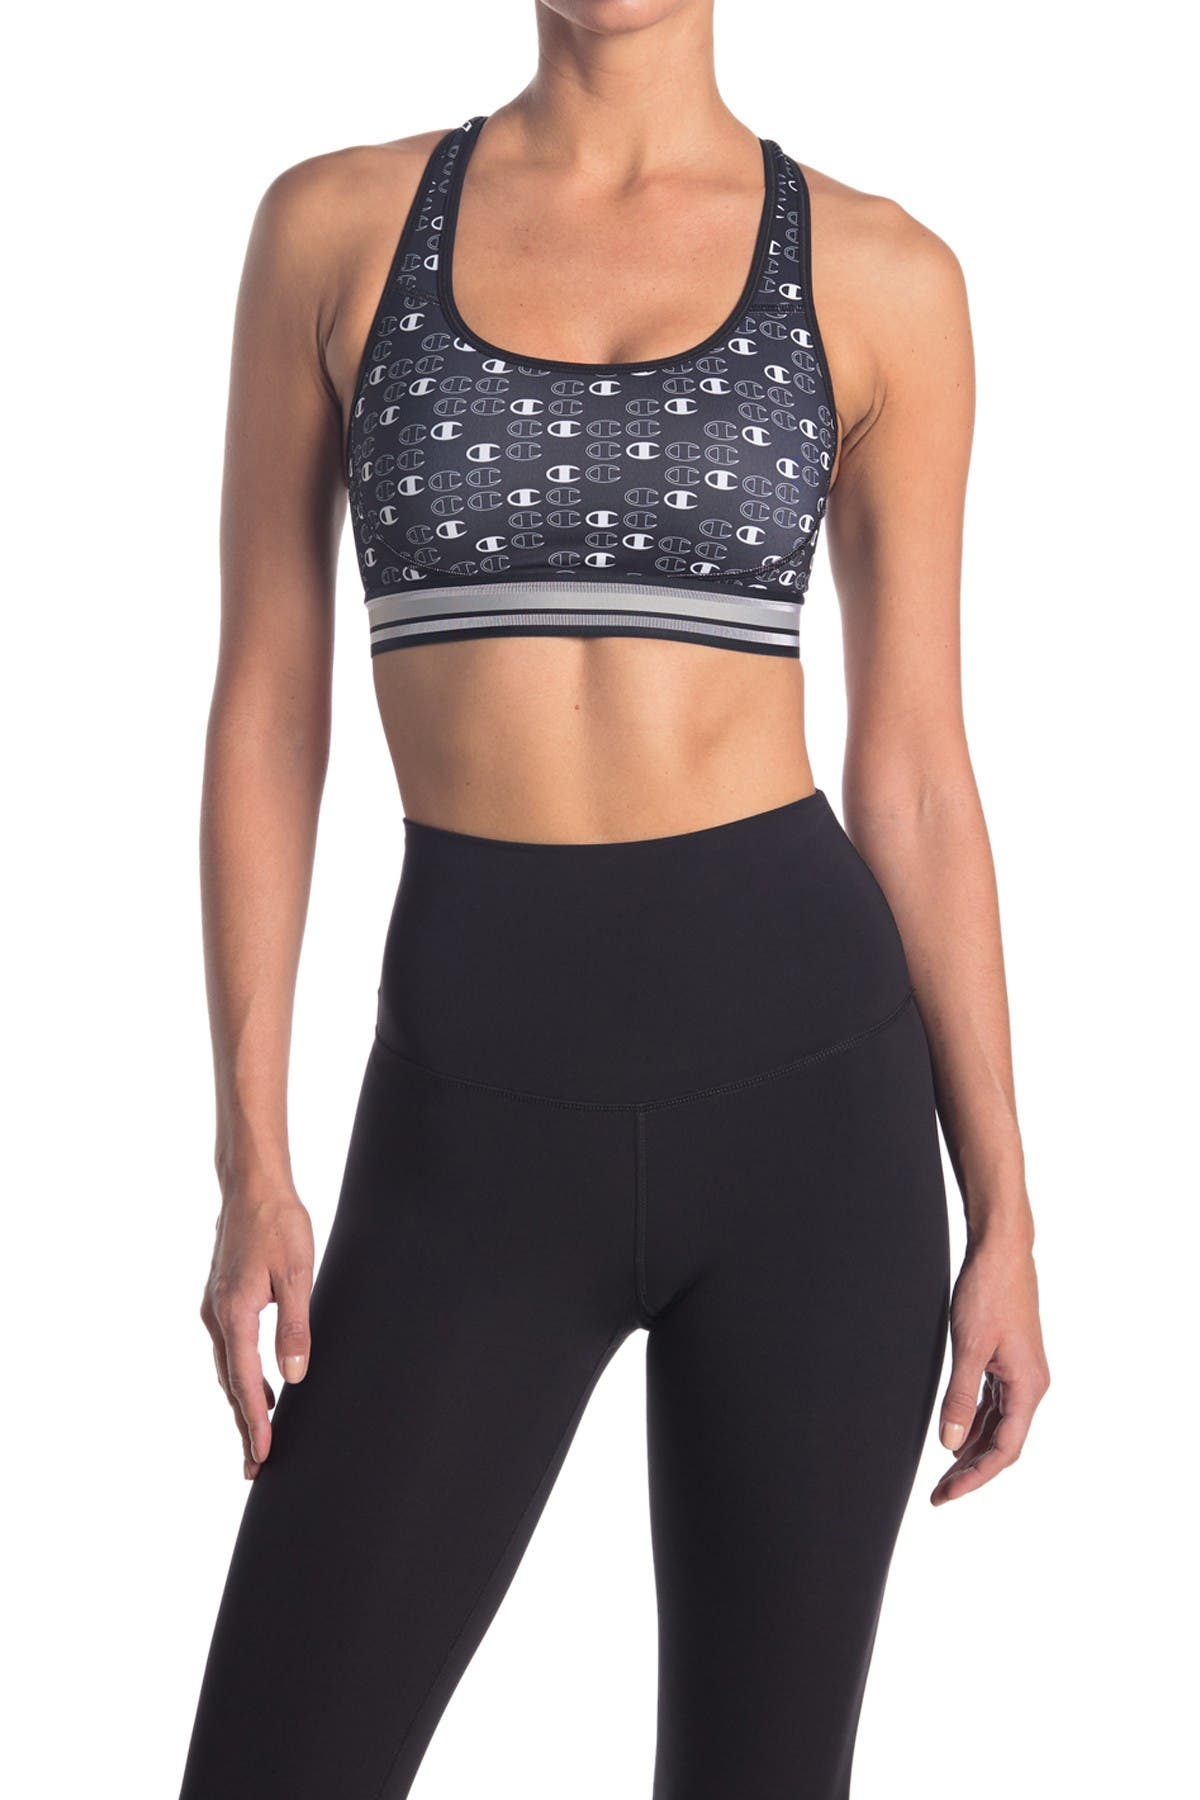 Image of Champion Absolute Workout Logo Print Compression Sports Bra